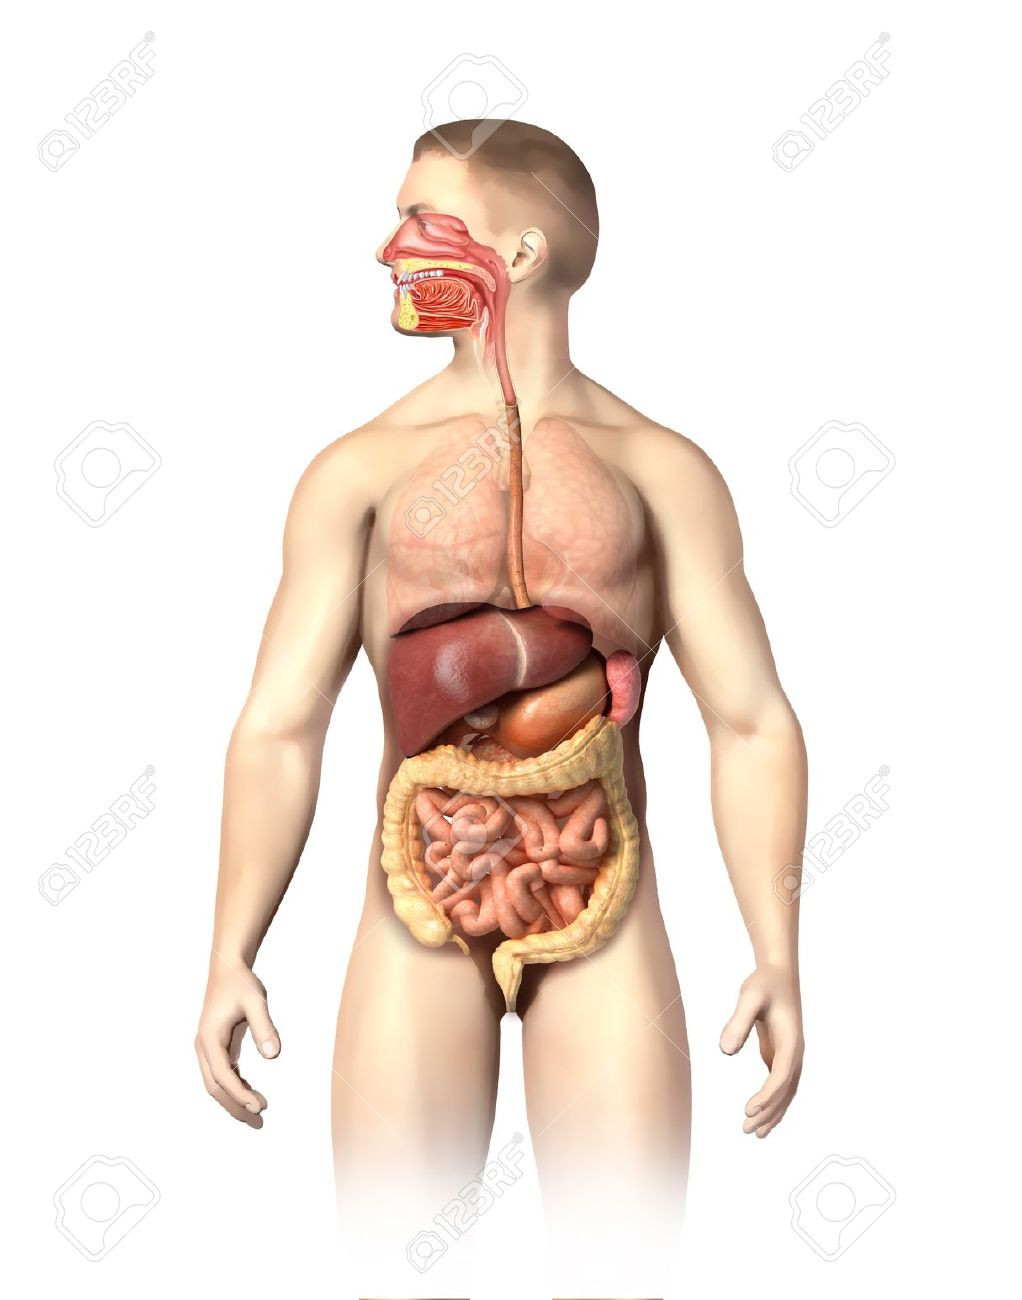 Man Anatomy Digestive System Cutaway, Including Mouth The Other ...